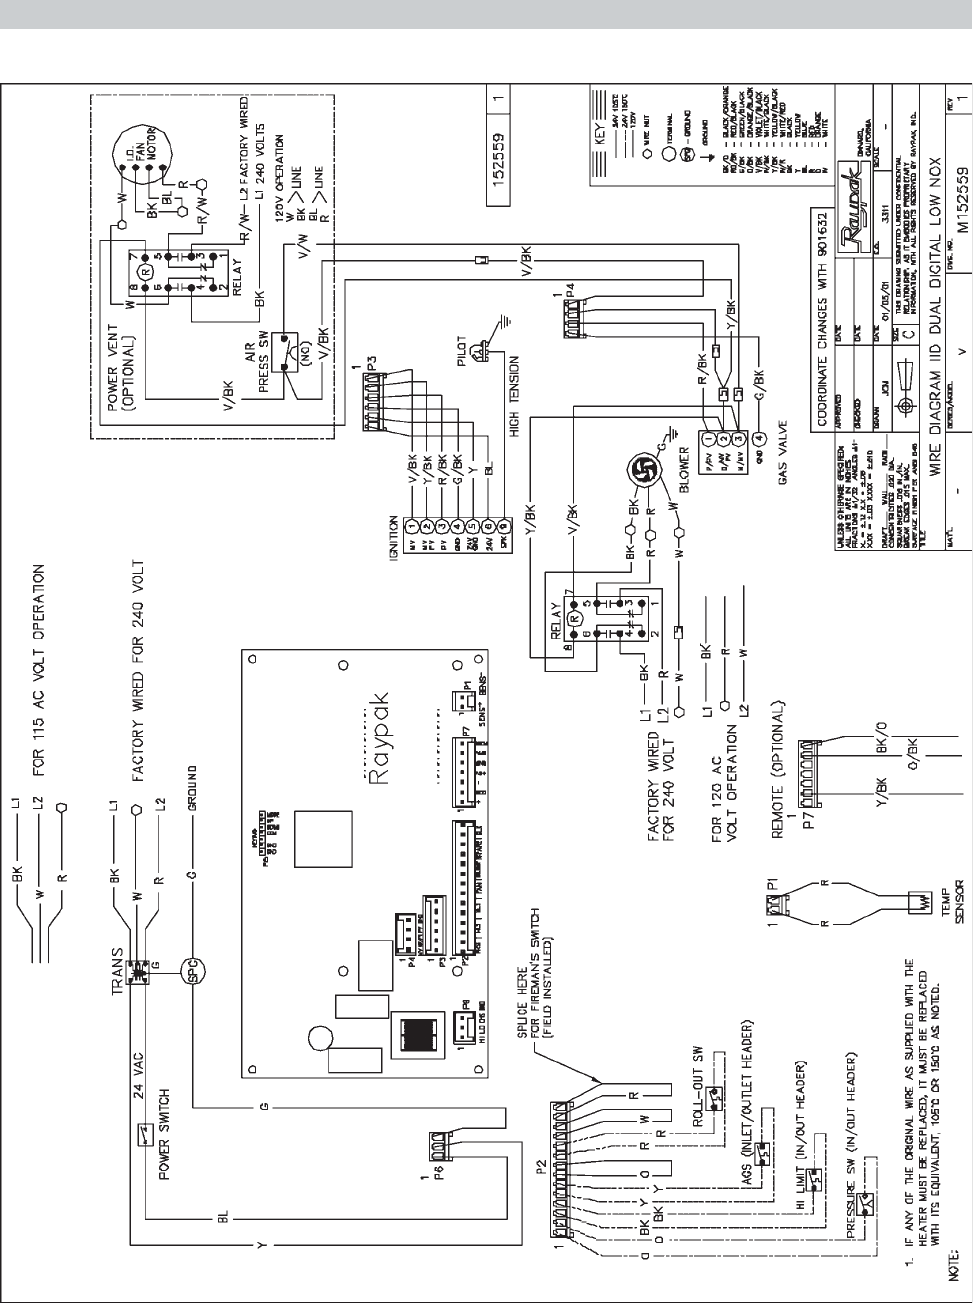 c781a38e 3a6e 4dbc 83db b3c03d45ca16 bg18 page 24 of raypak swimming pool heater p r405a user guide raypak 2100 wiring diagram at gsmx.co